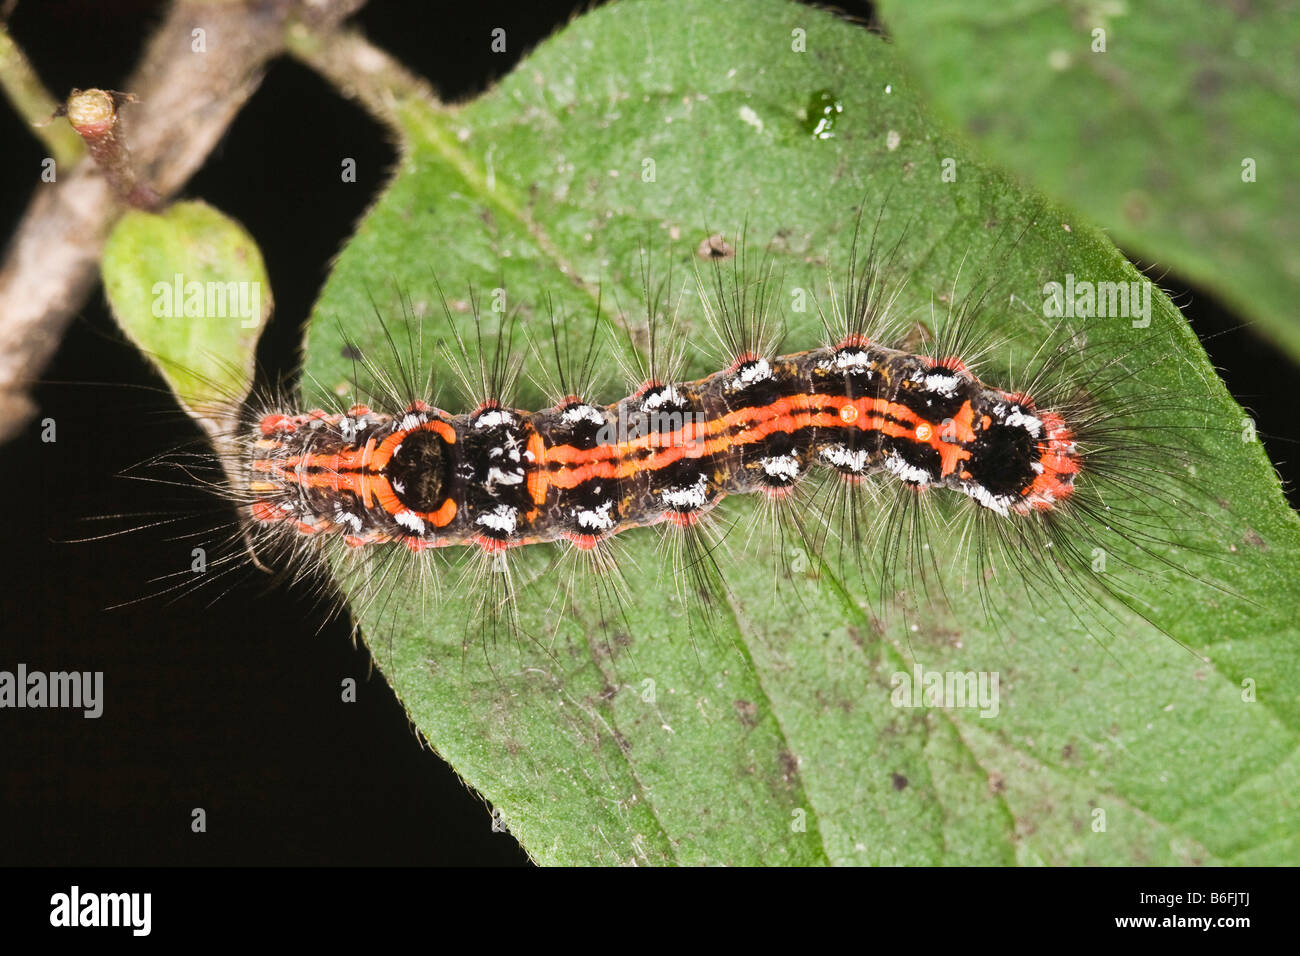 Caterpillar of a Yellow-tail moth (Euproctis similis) - Stock Image